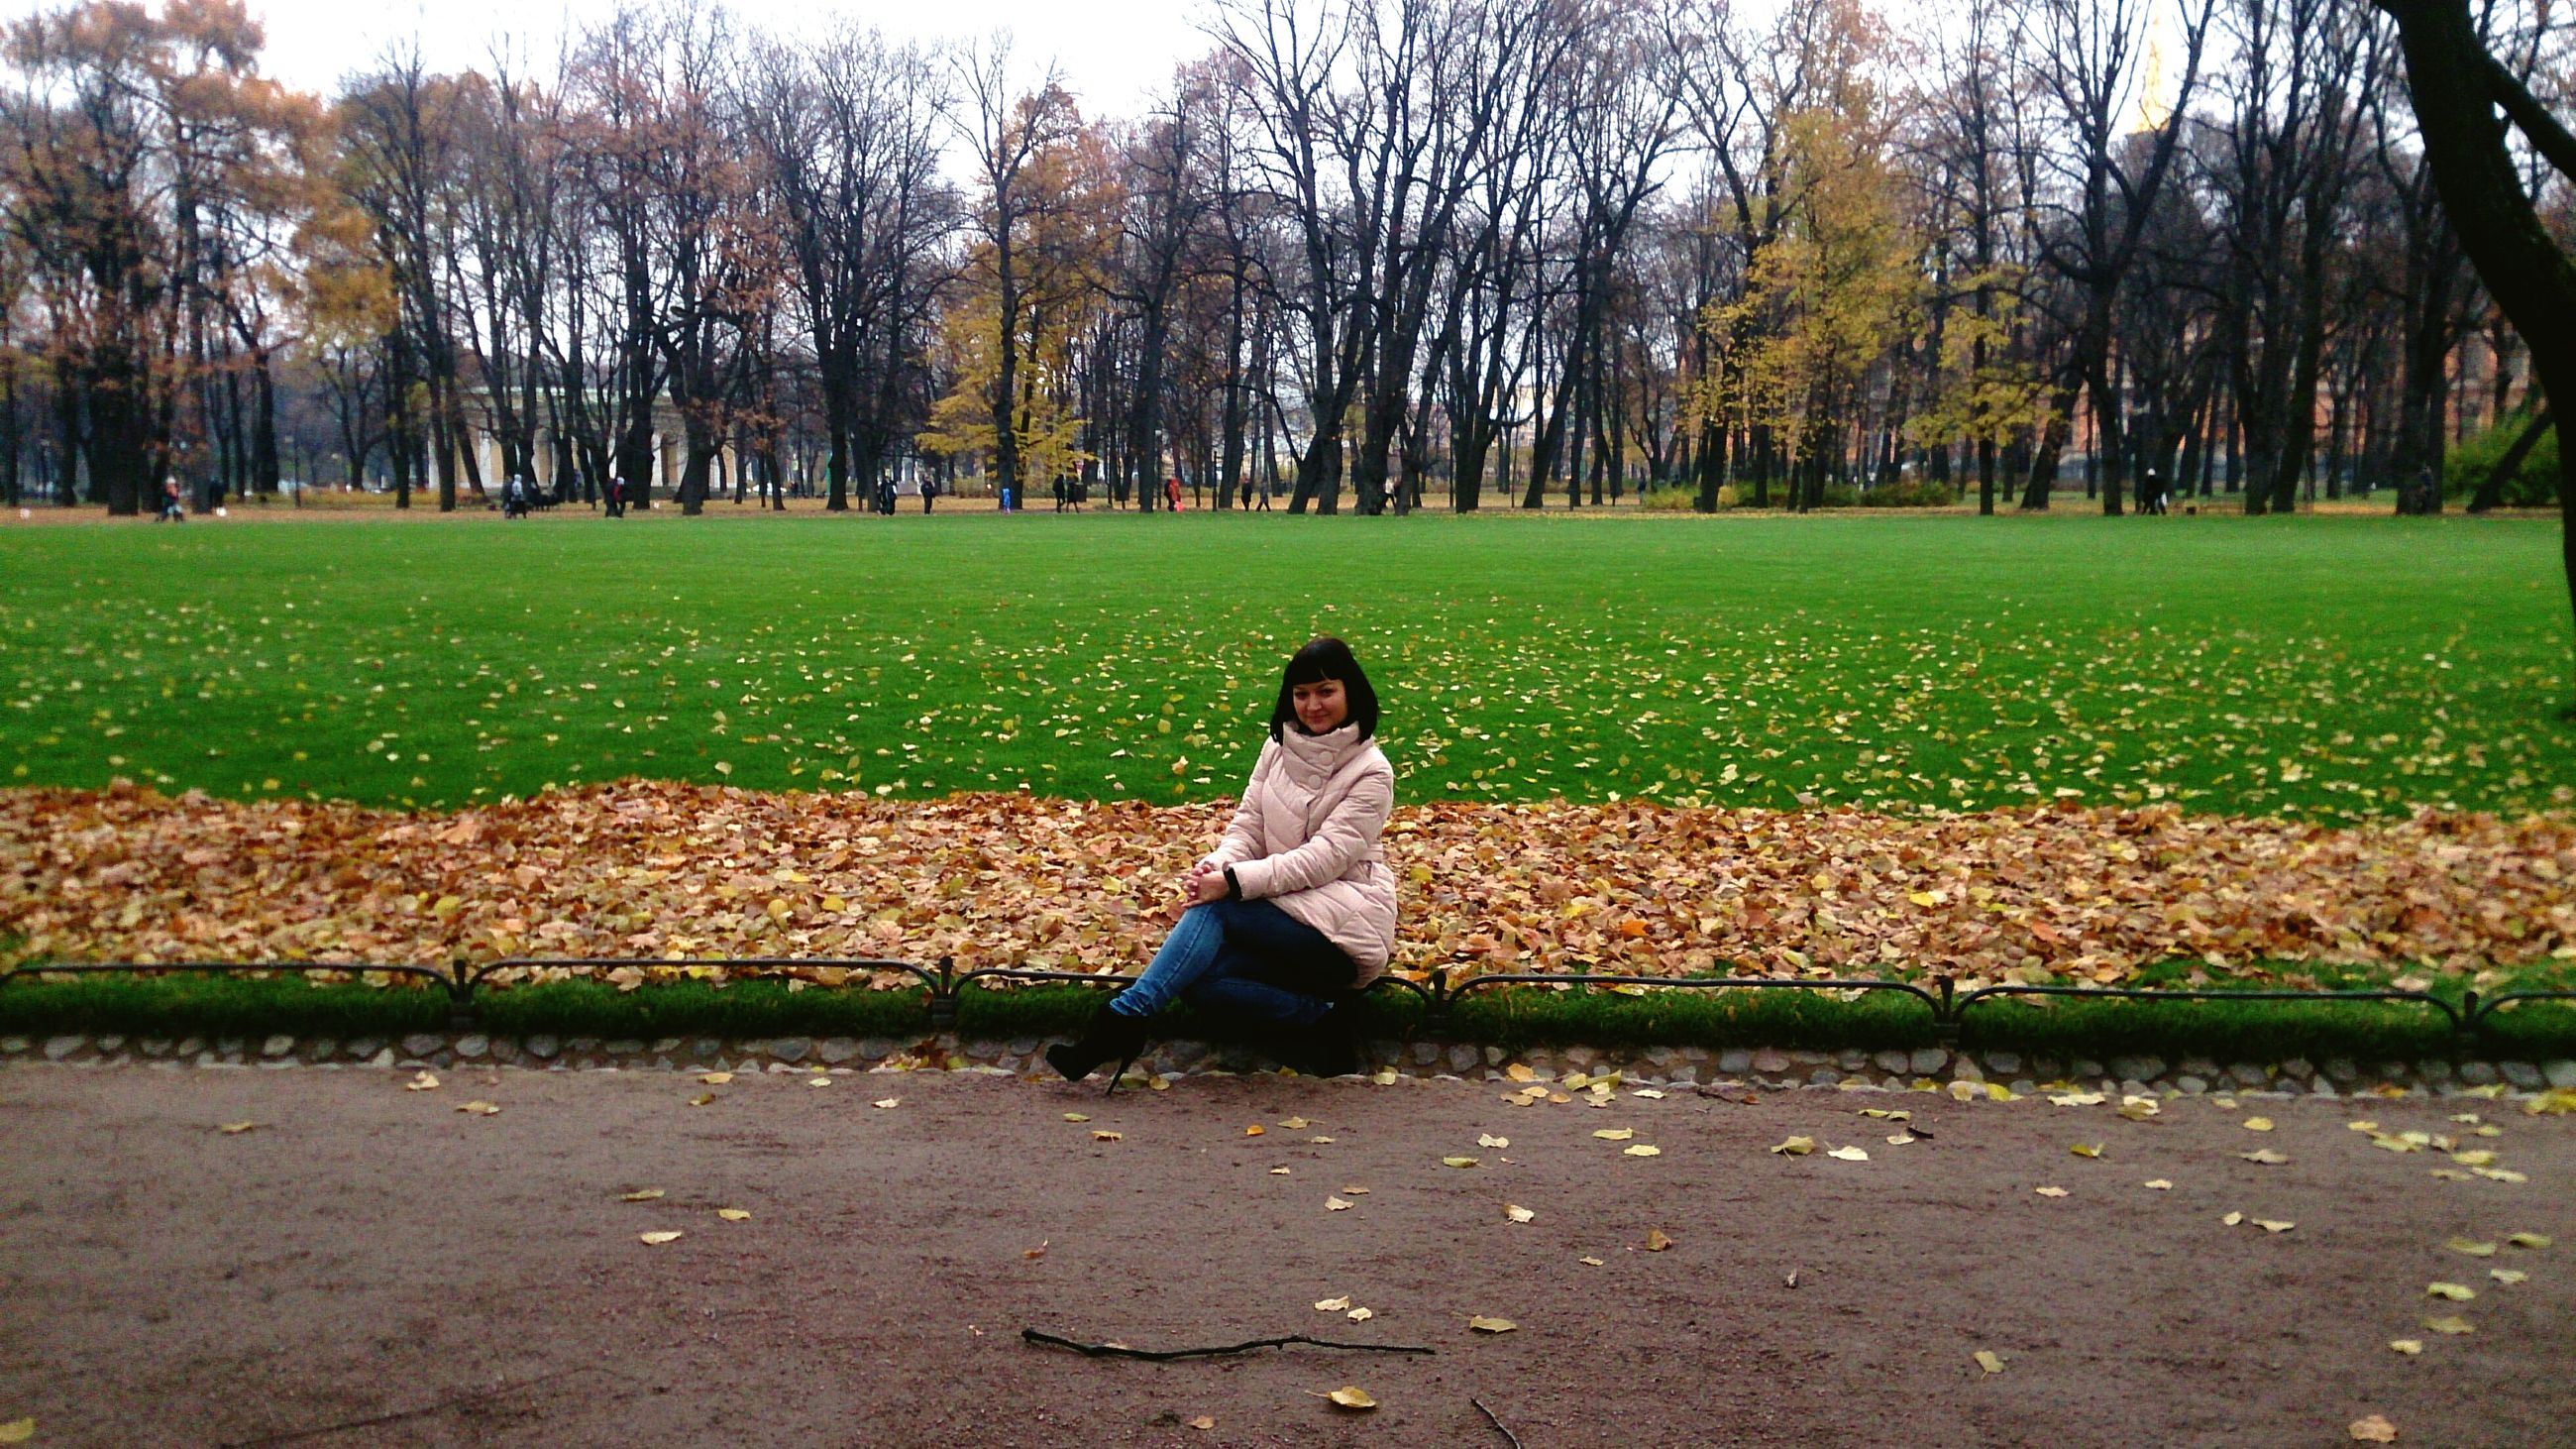 tree, lifestyles, leisure activity, casual clothing, grass, person, full length, young adult, field, park - man made space, sitting, standing, relaxation, young women, day, outdoors, park, tranquility